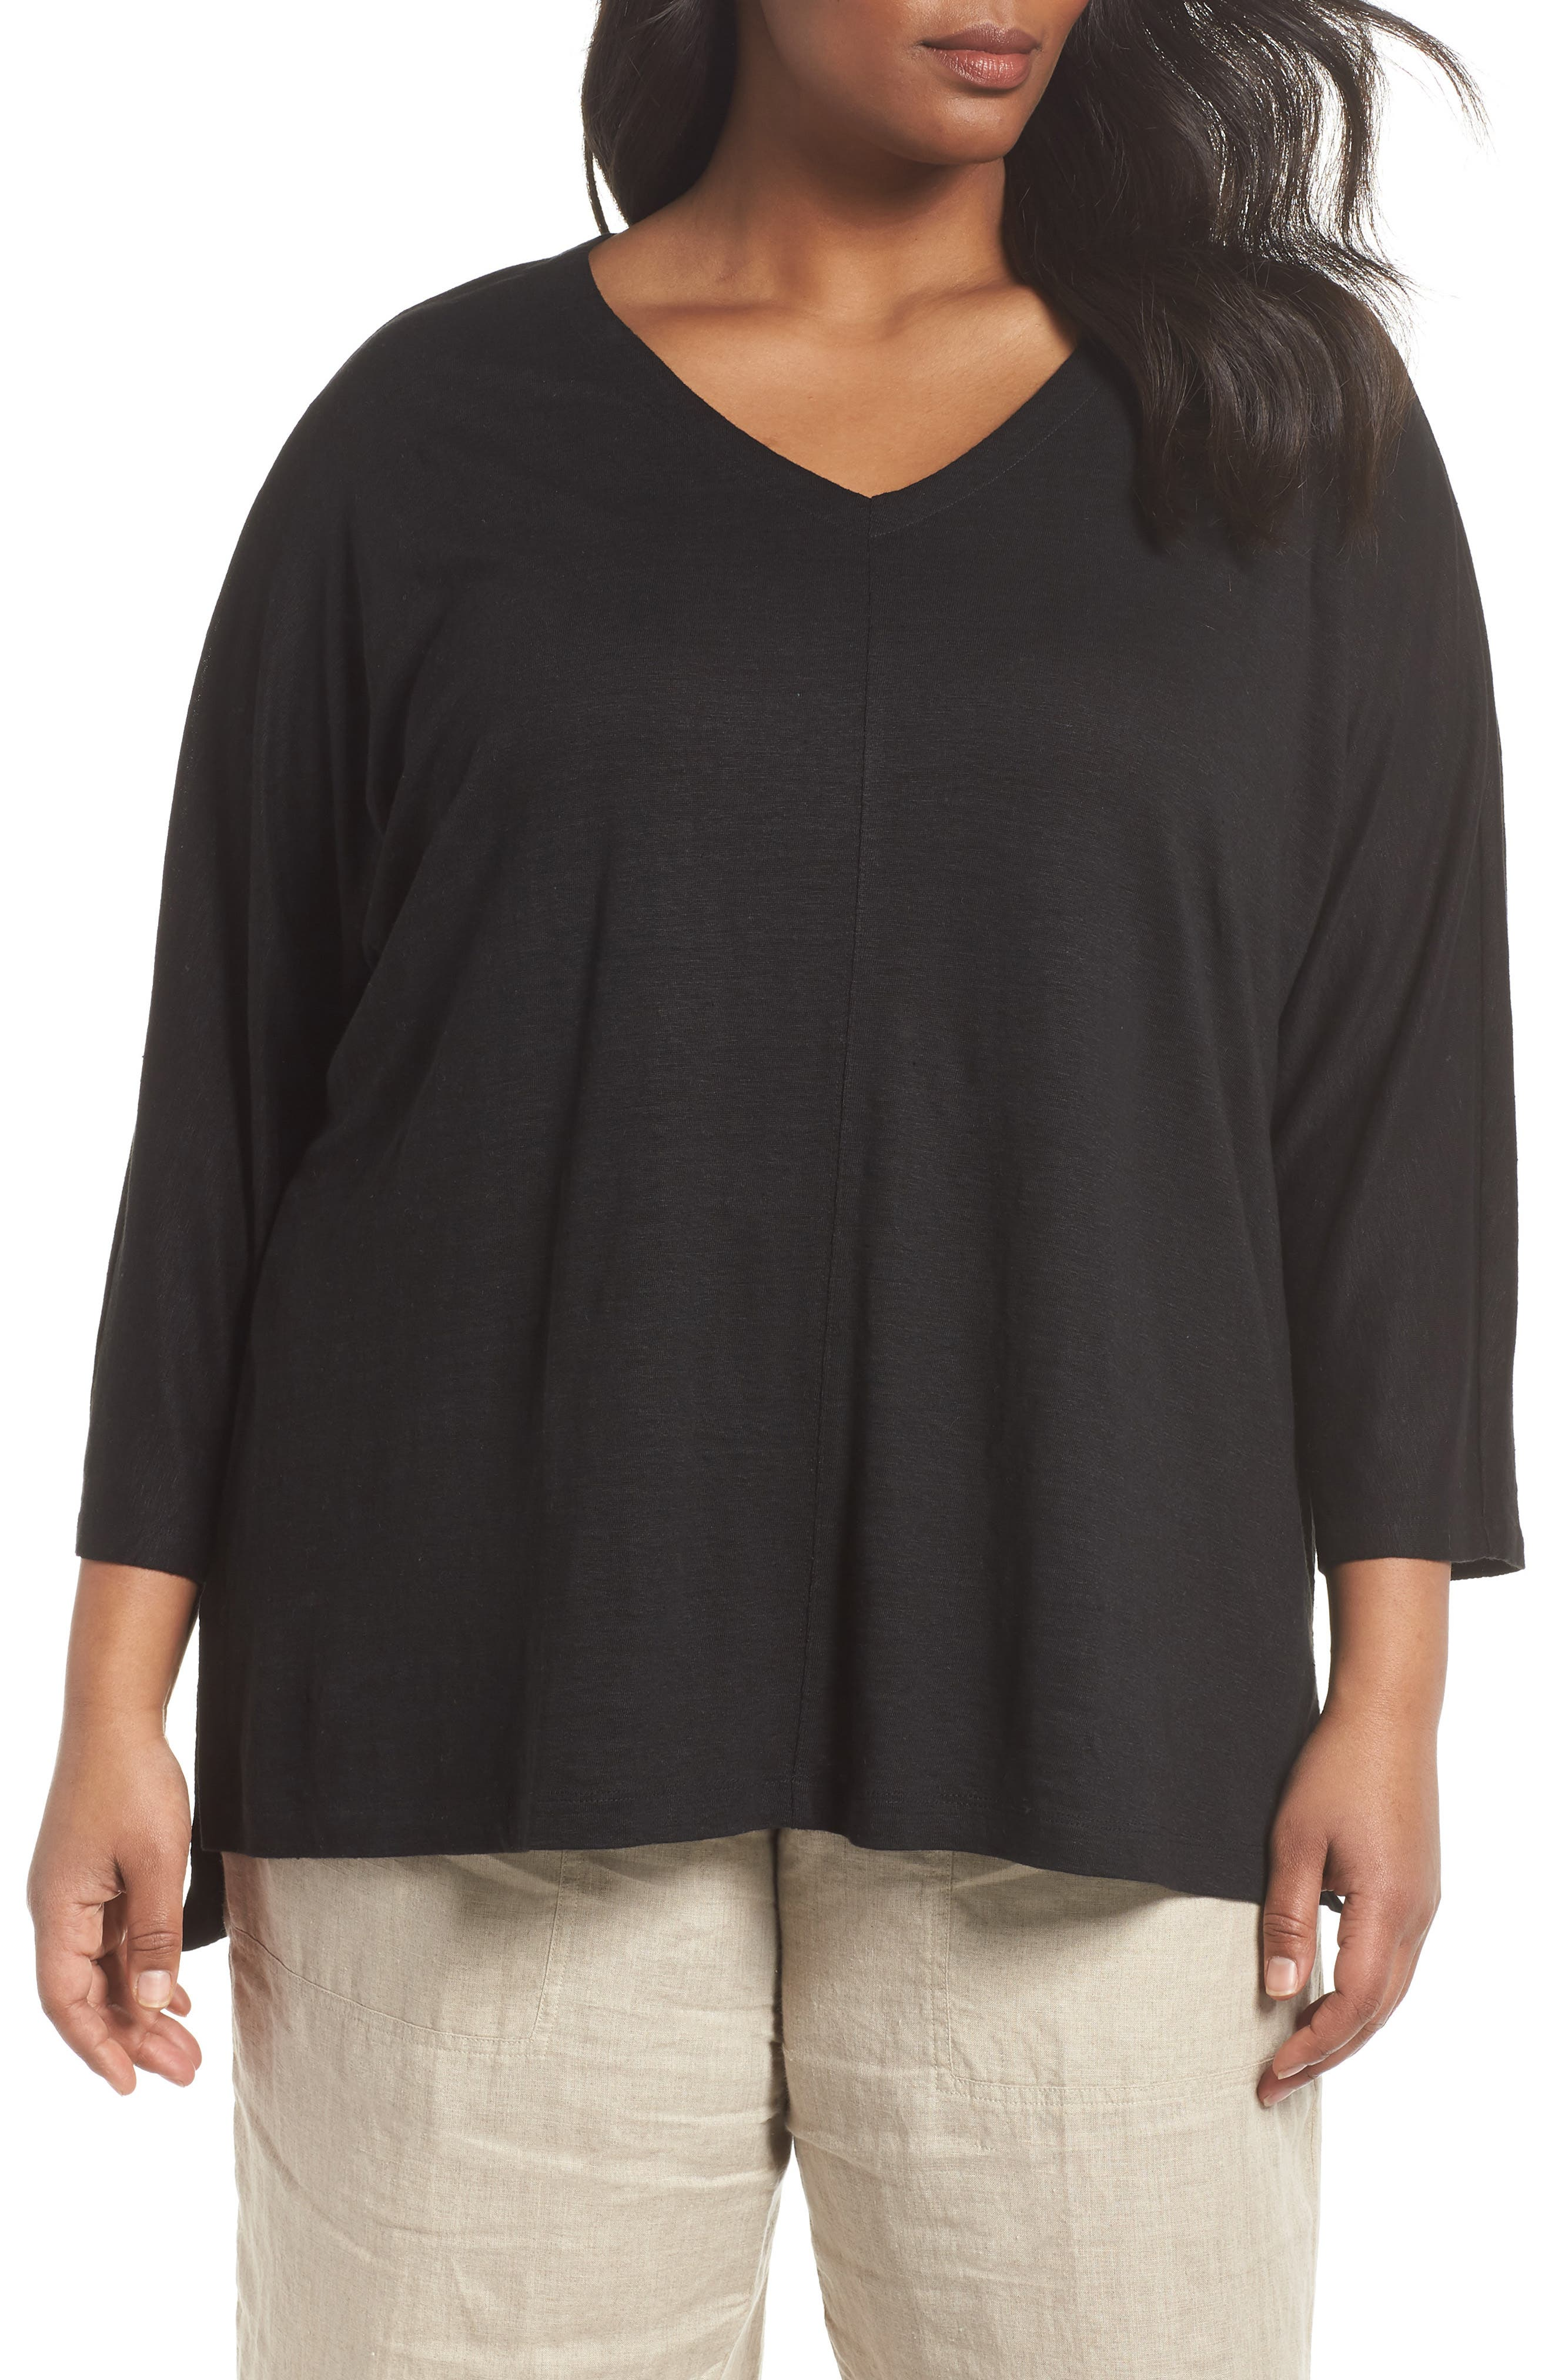 EILEEN FISHER Organic Linen Top, Main, color, 001